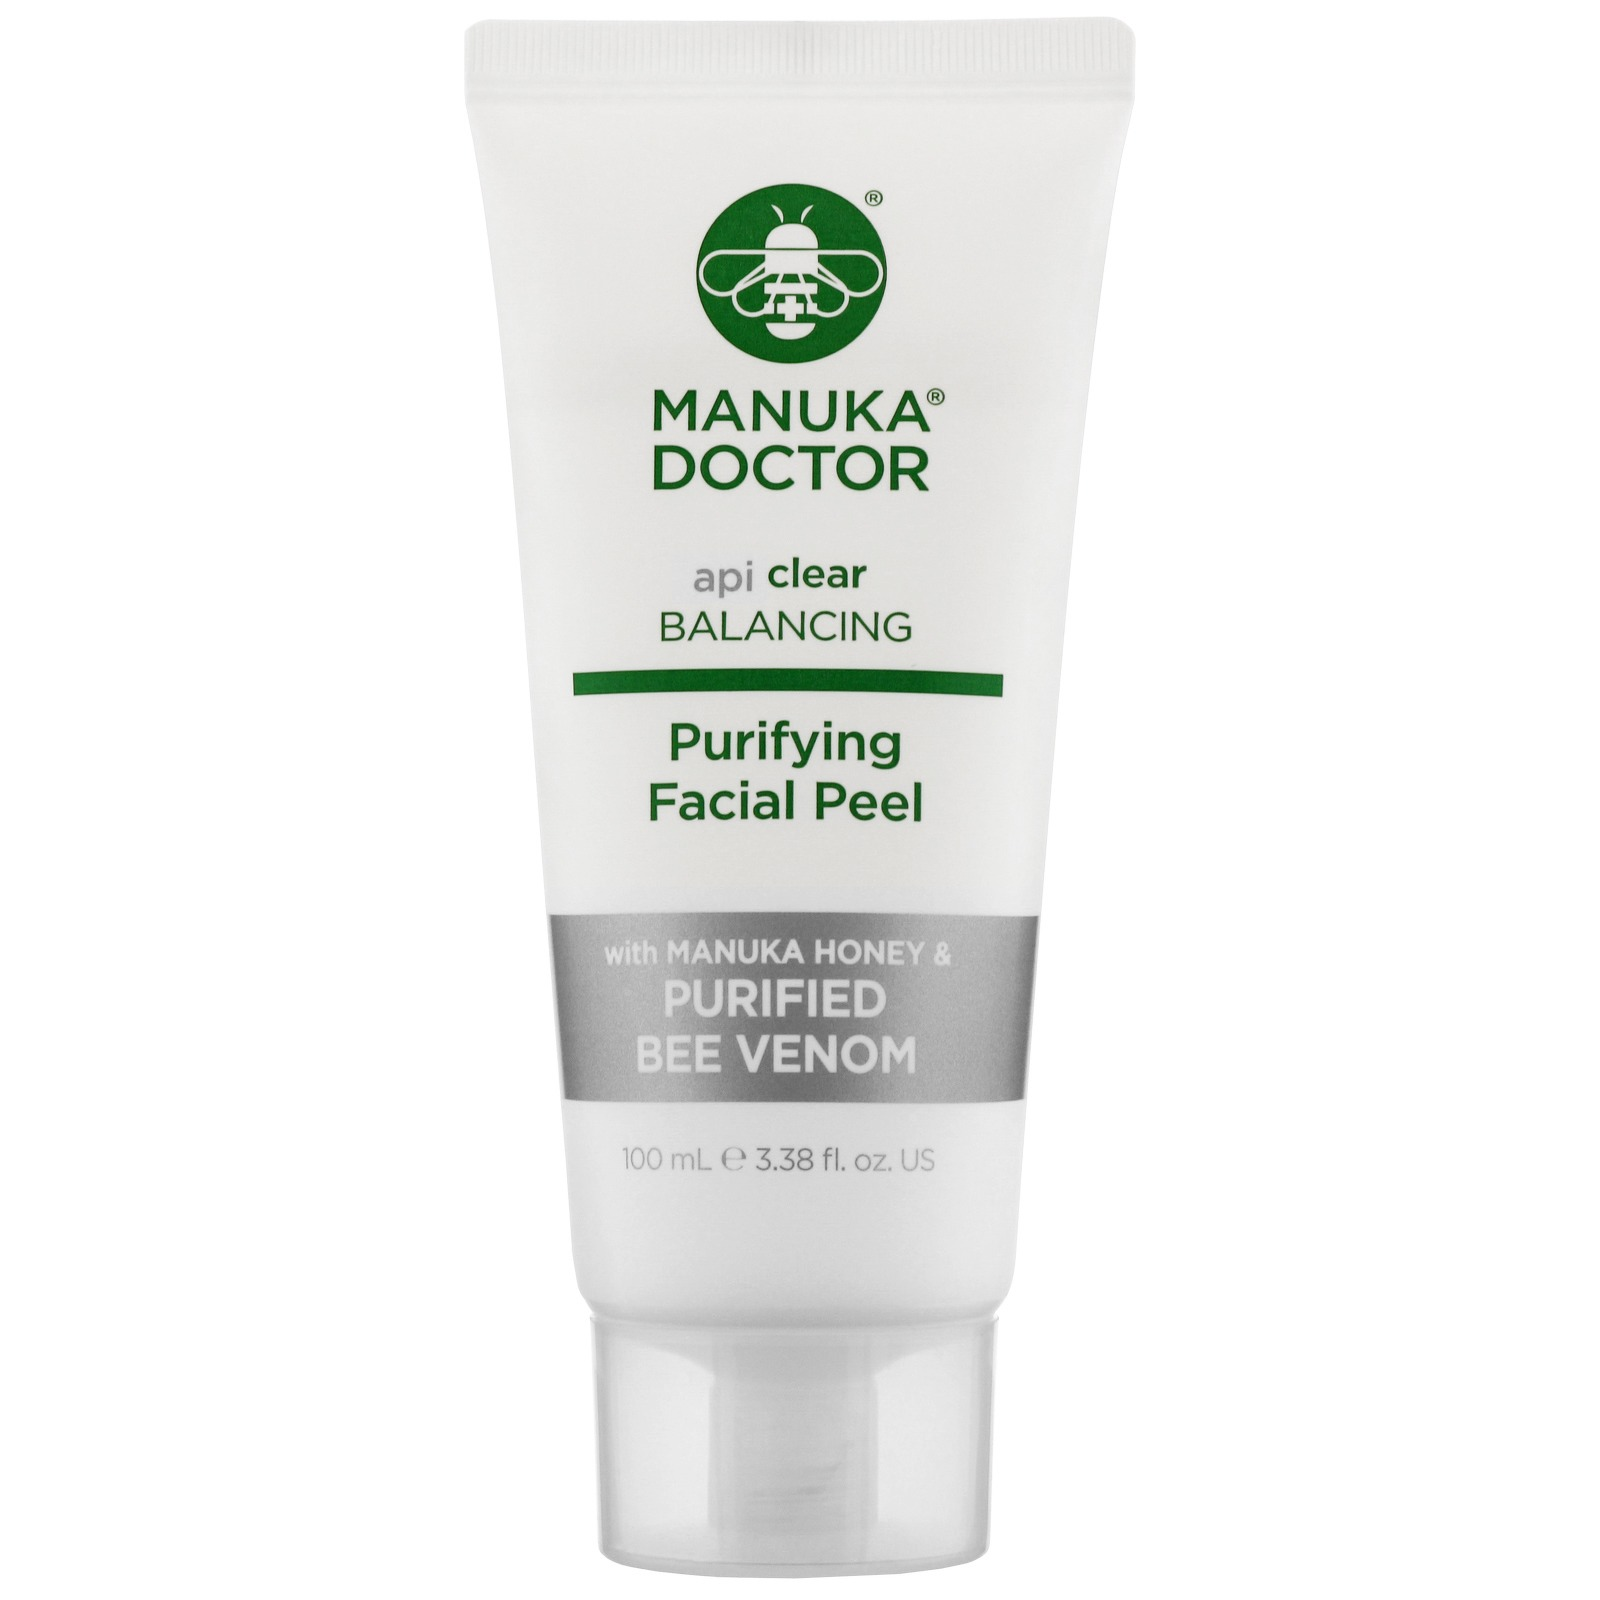 Manuka Doctor ApiClear Purifying Facial Peel 100ml